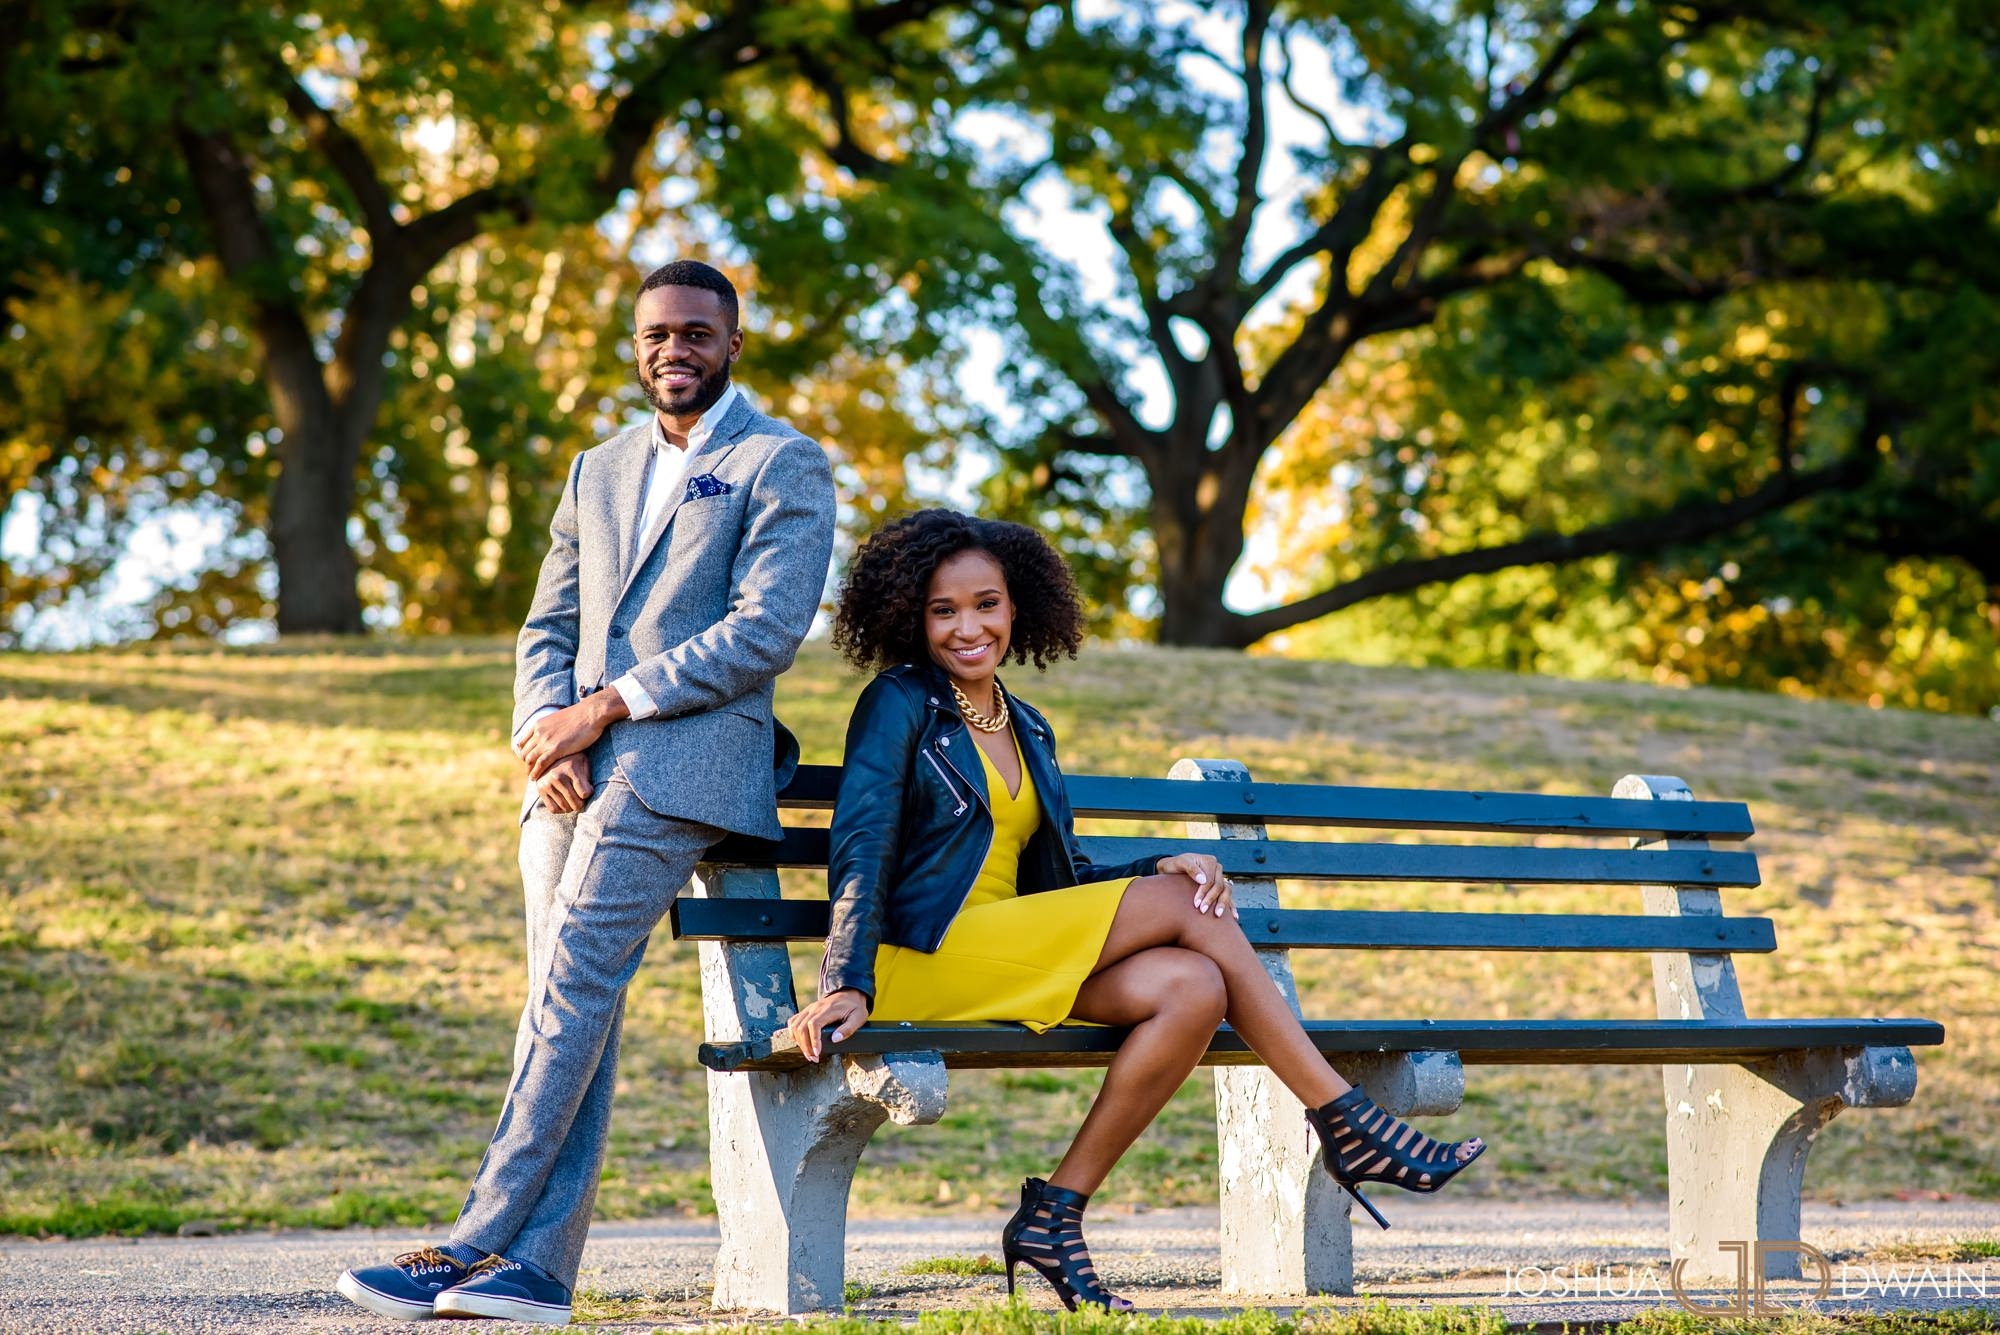 alicia-kola-001-fort-greene-brooklyn-engagement-session-joshua-dwain